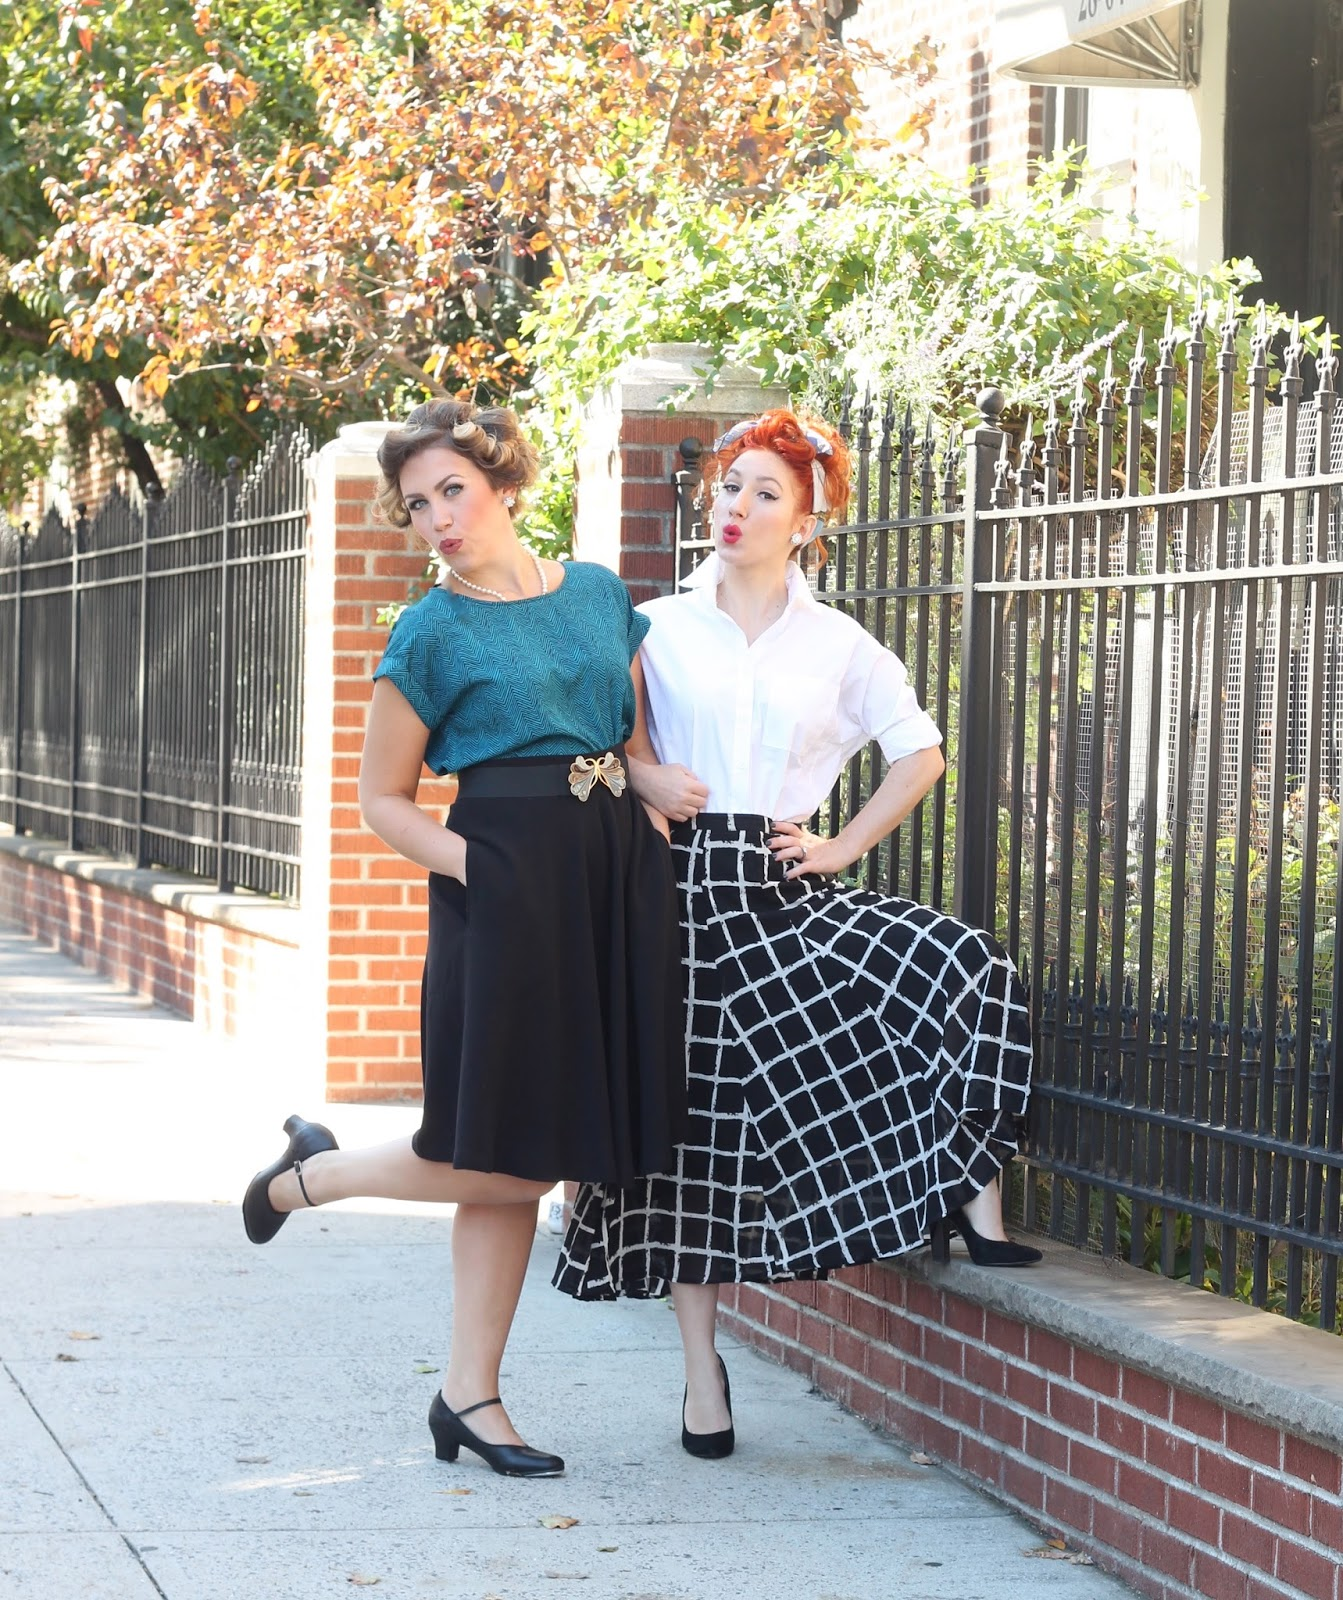 i love lucy costumes for cheap costume ideas lucy ricardo closet costume ideas  sc 1 st  TfDiaries By Megan Zietz & 3 Costume Ideas for You and Your Bestie From Your Closet | TfDiaries ...